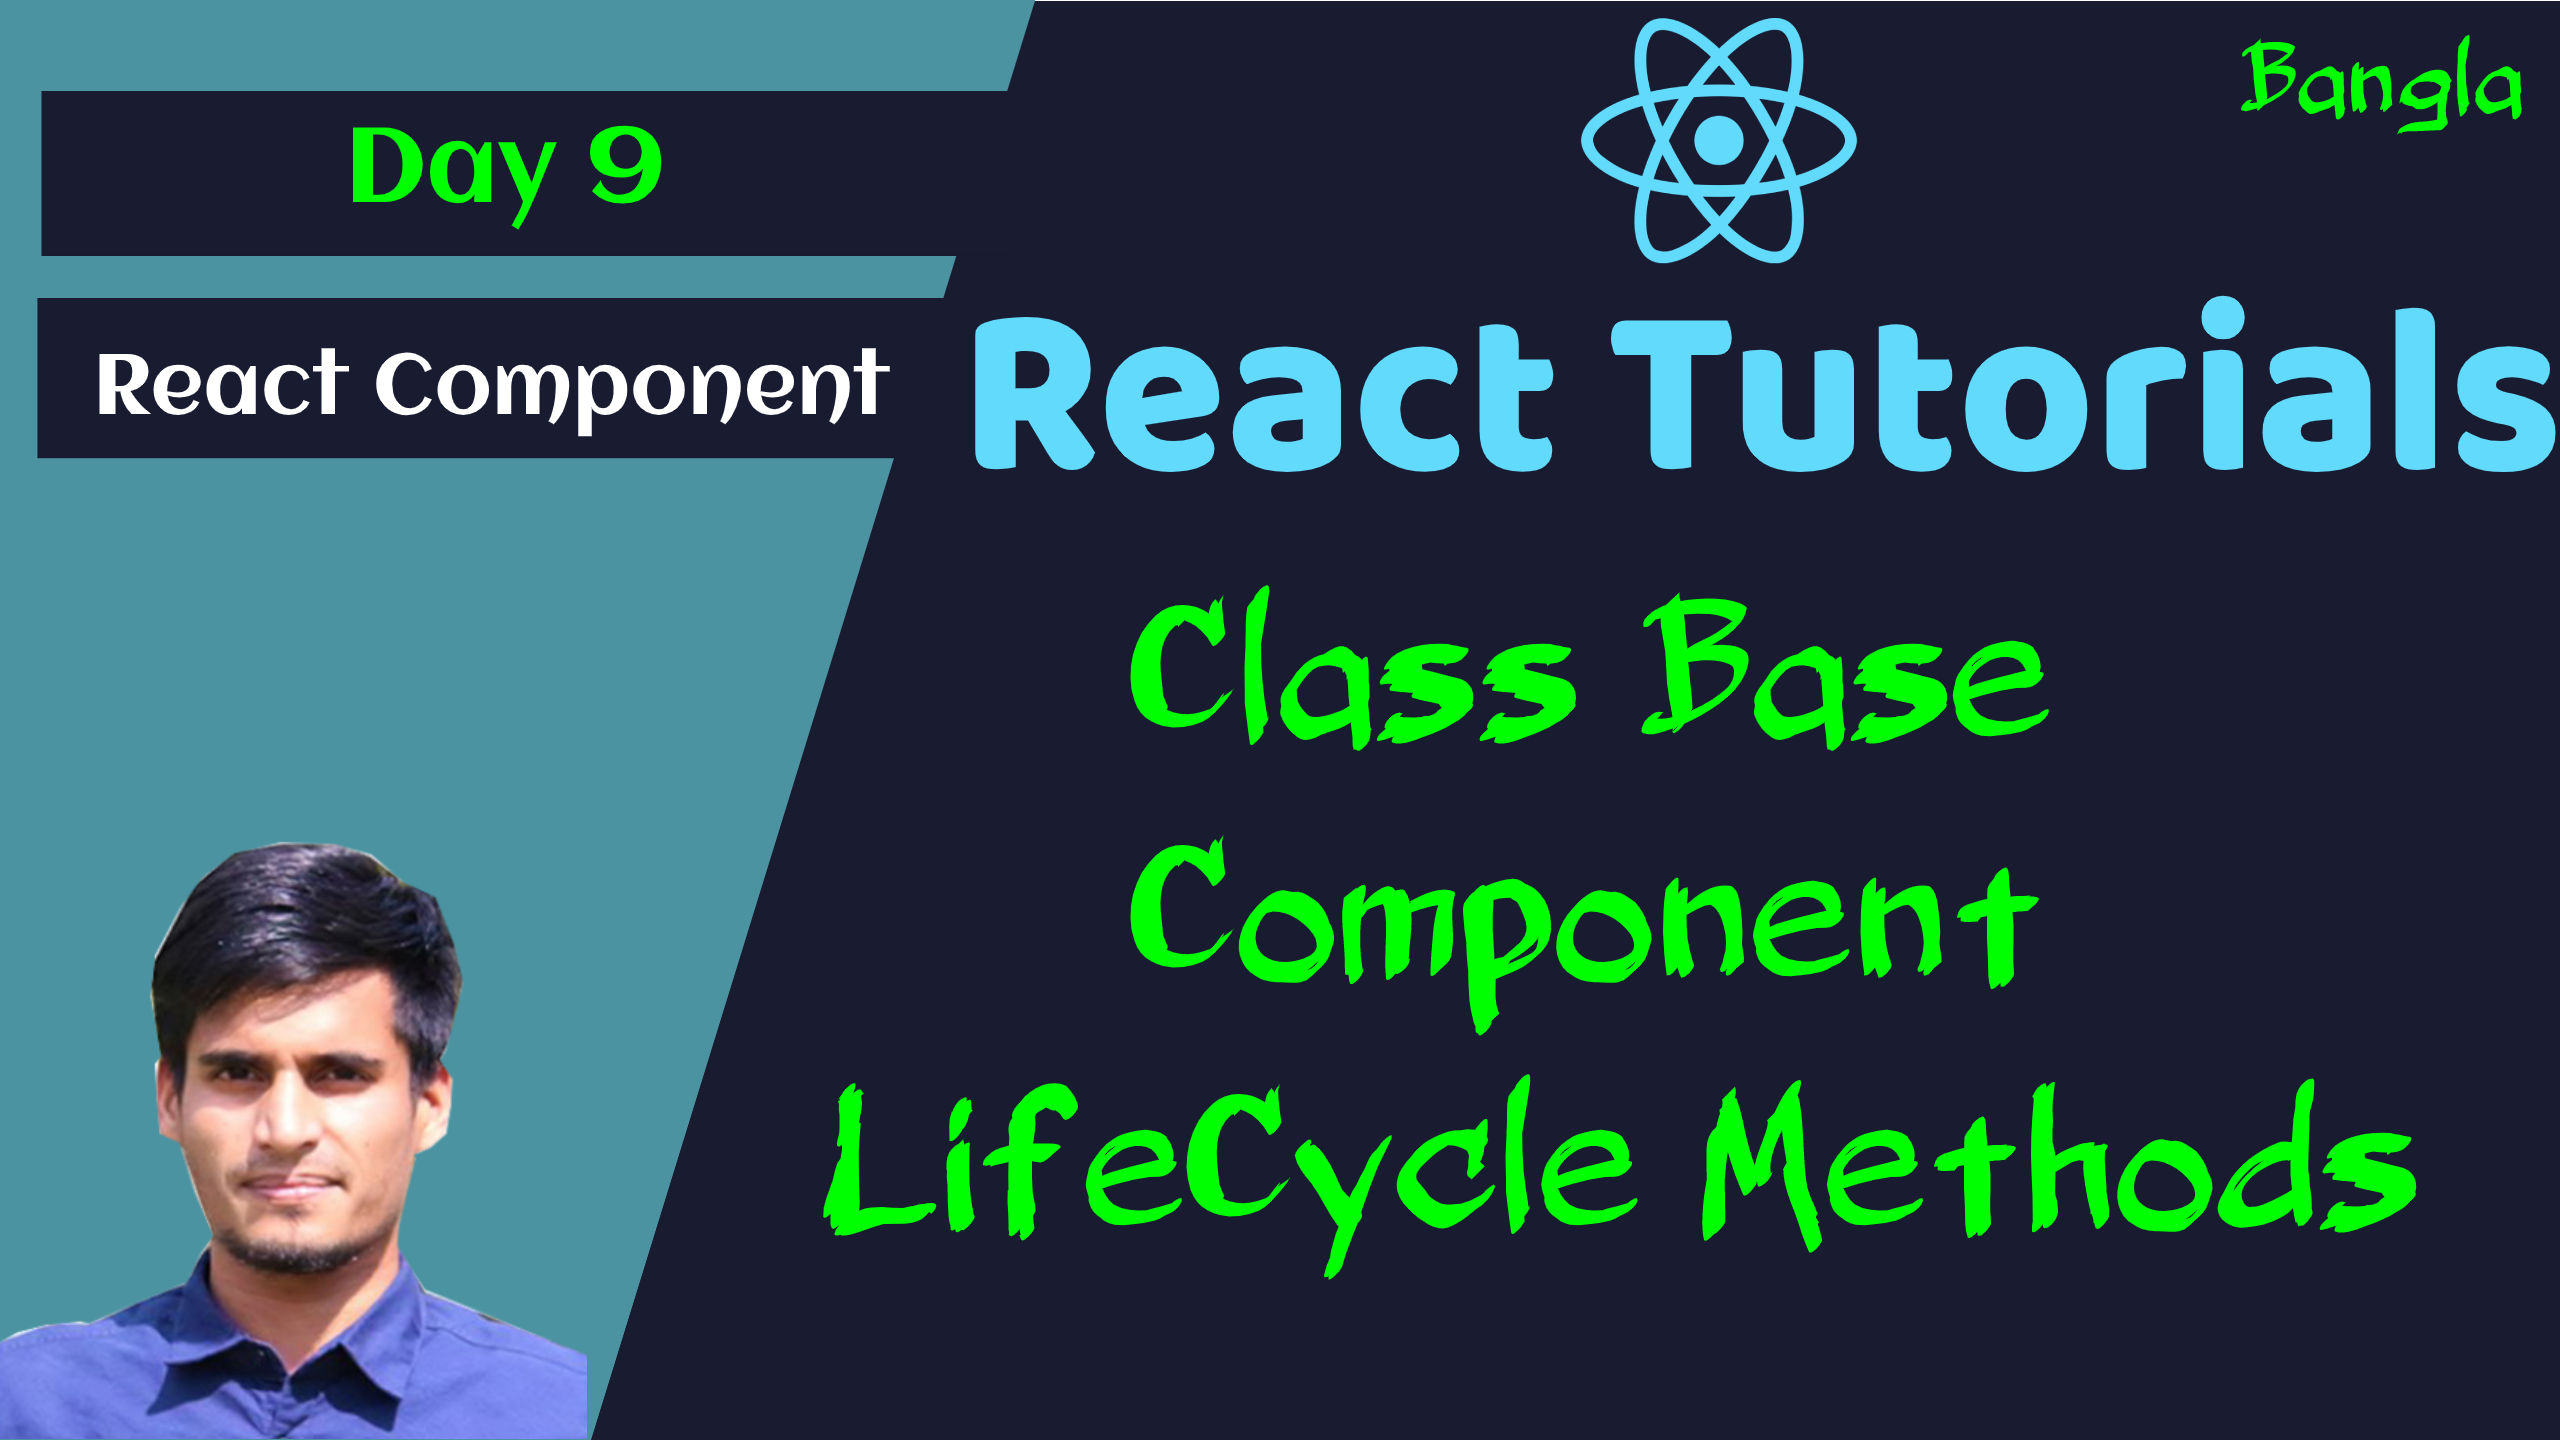 #9 - Class Base Component in React